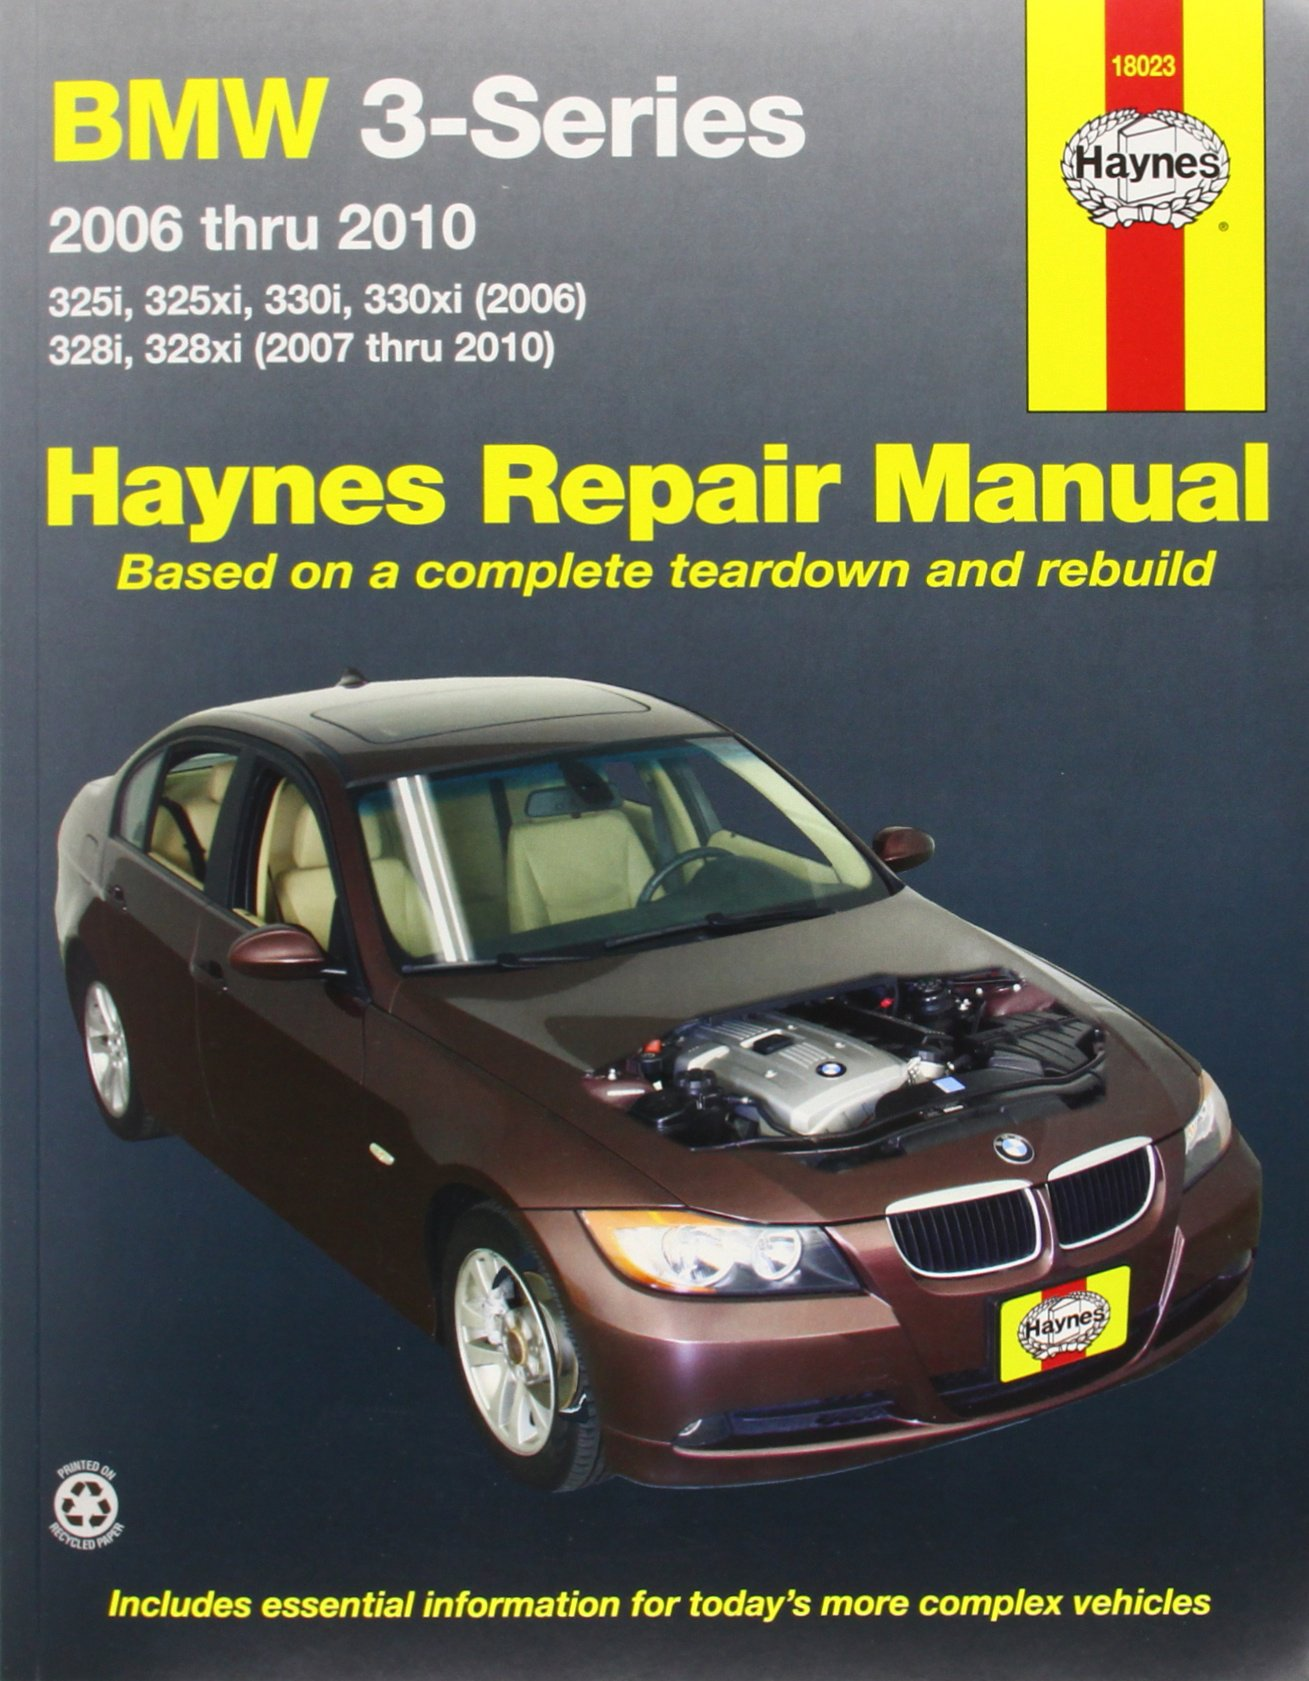 bmw 3 series automotive repair manual 2006 2010 haynes automotive rh amazon co uk 2006 honda odyssey haynes repair manual 2006 gto haynes manual